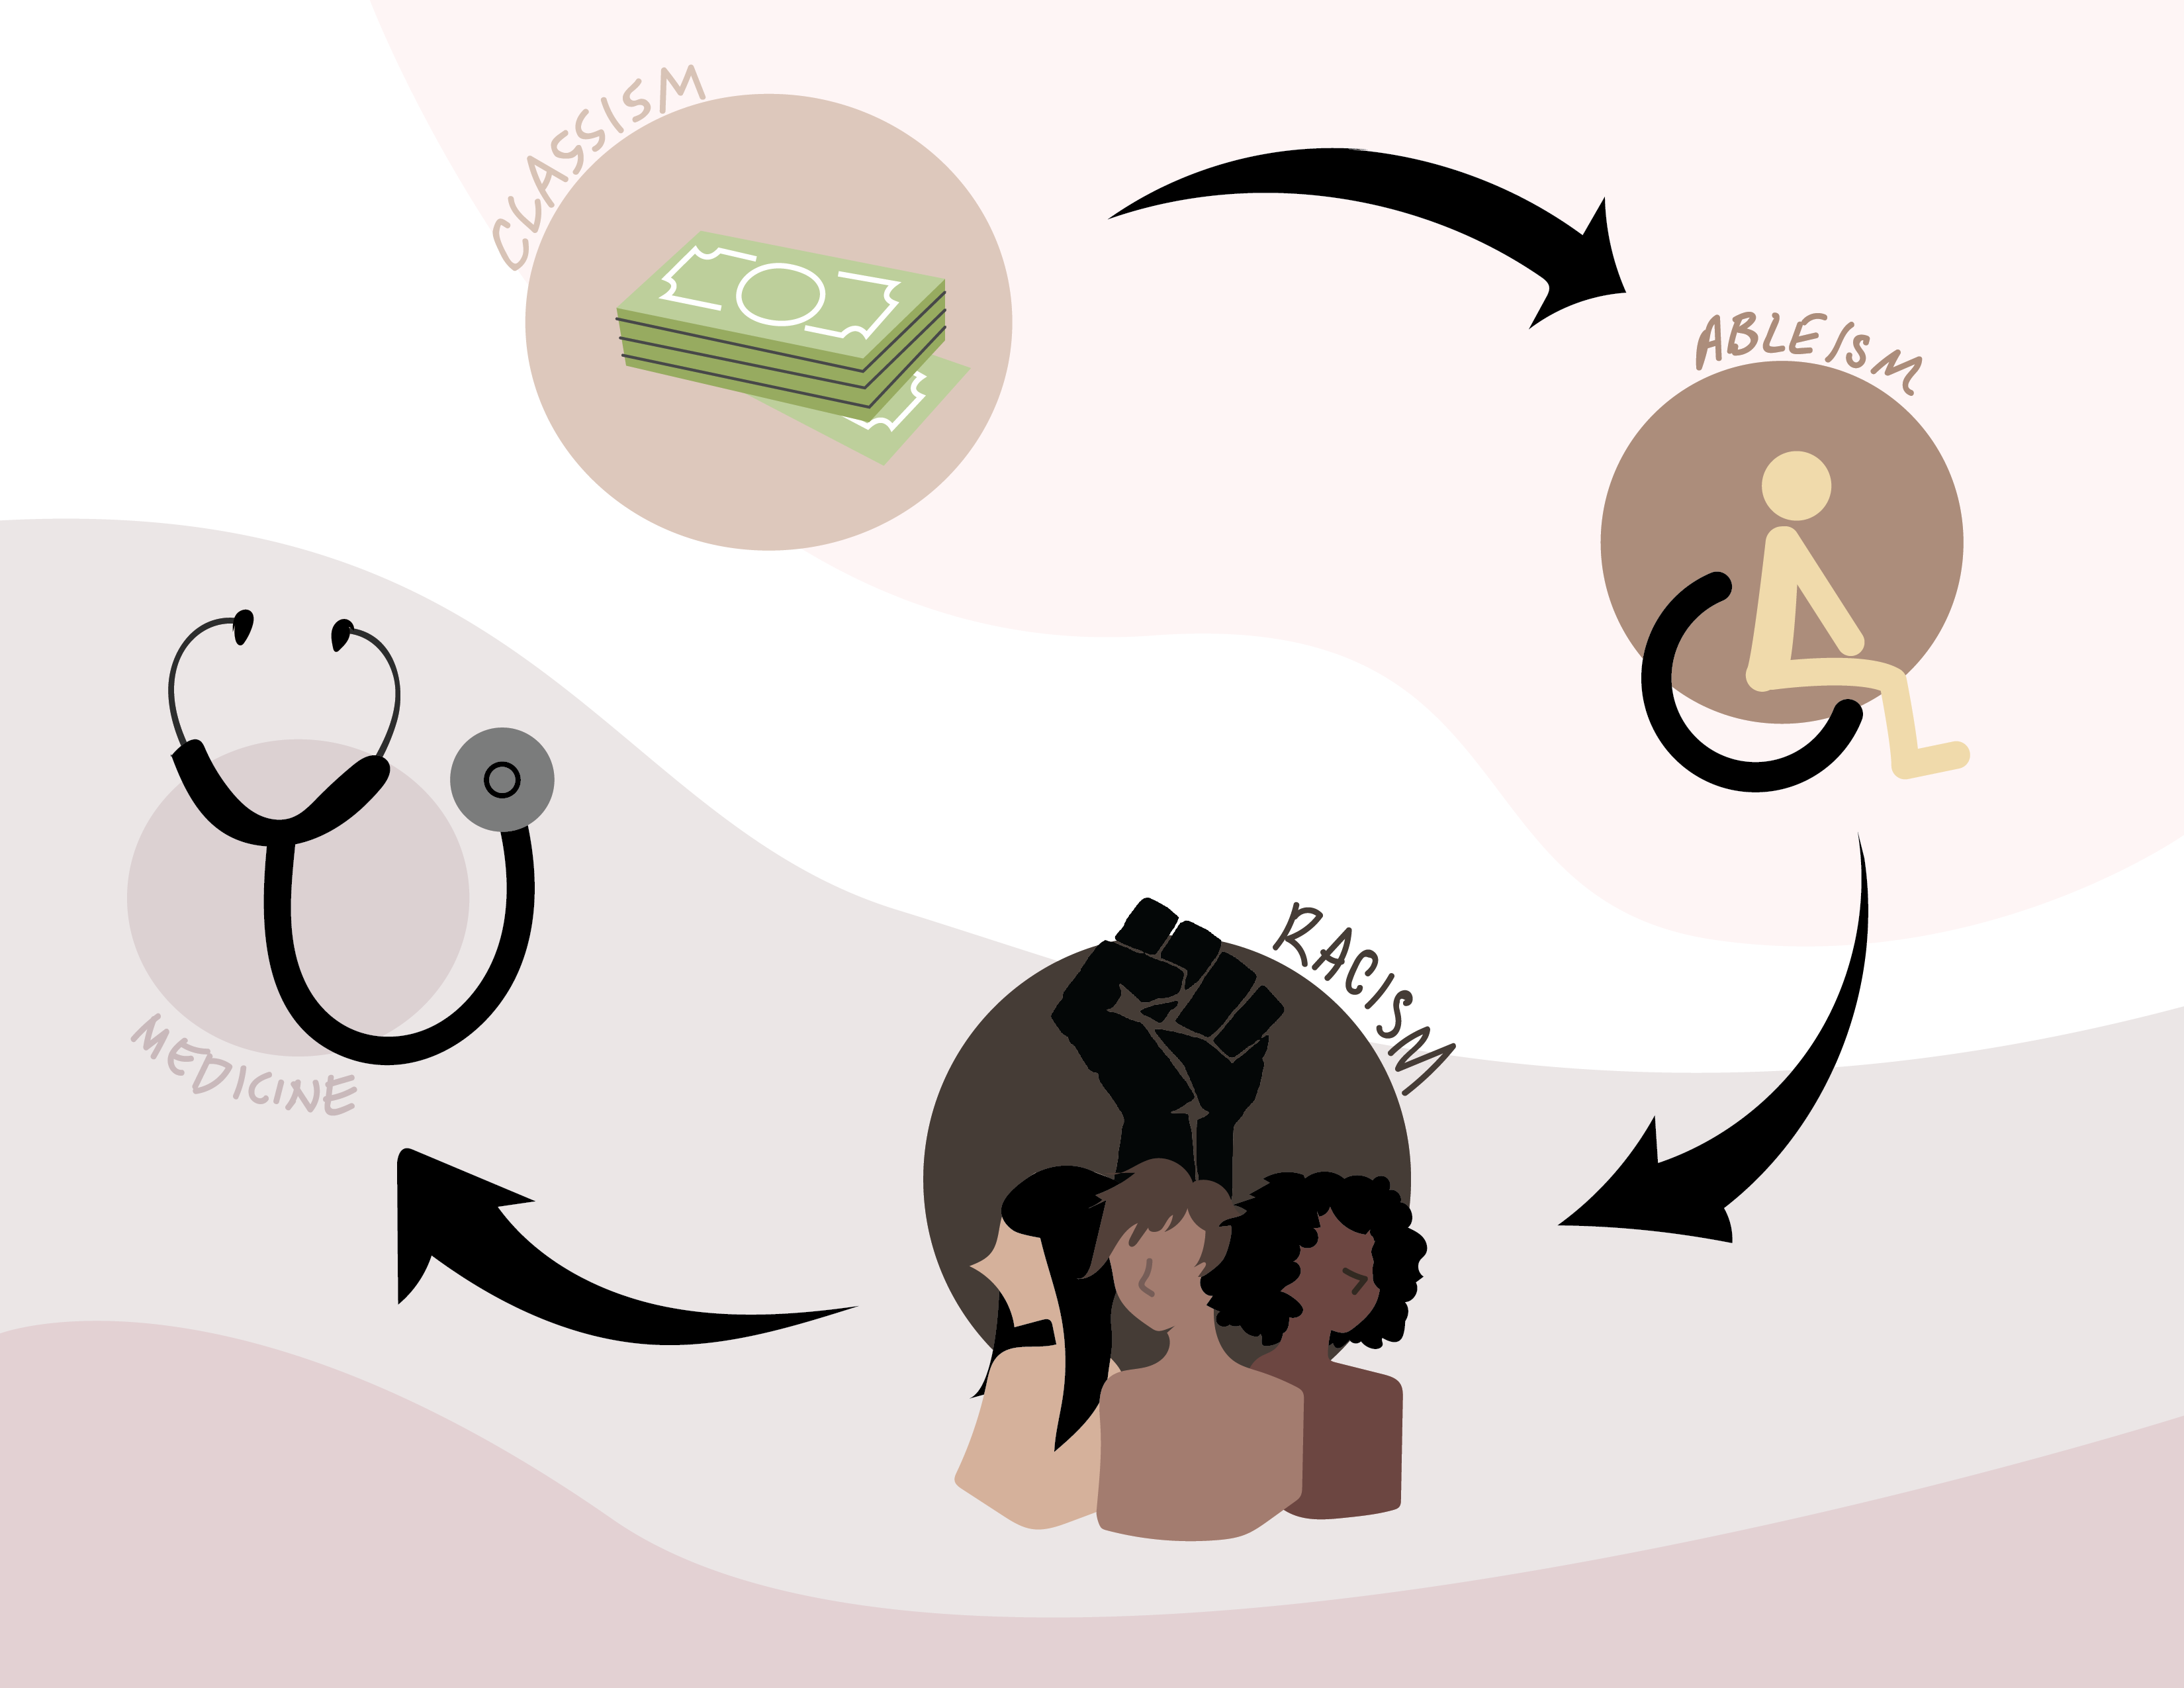 A graphic showing a cycle of racism, classism, and ableism within medical school.